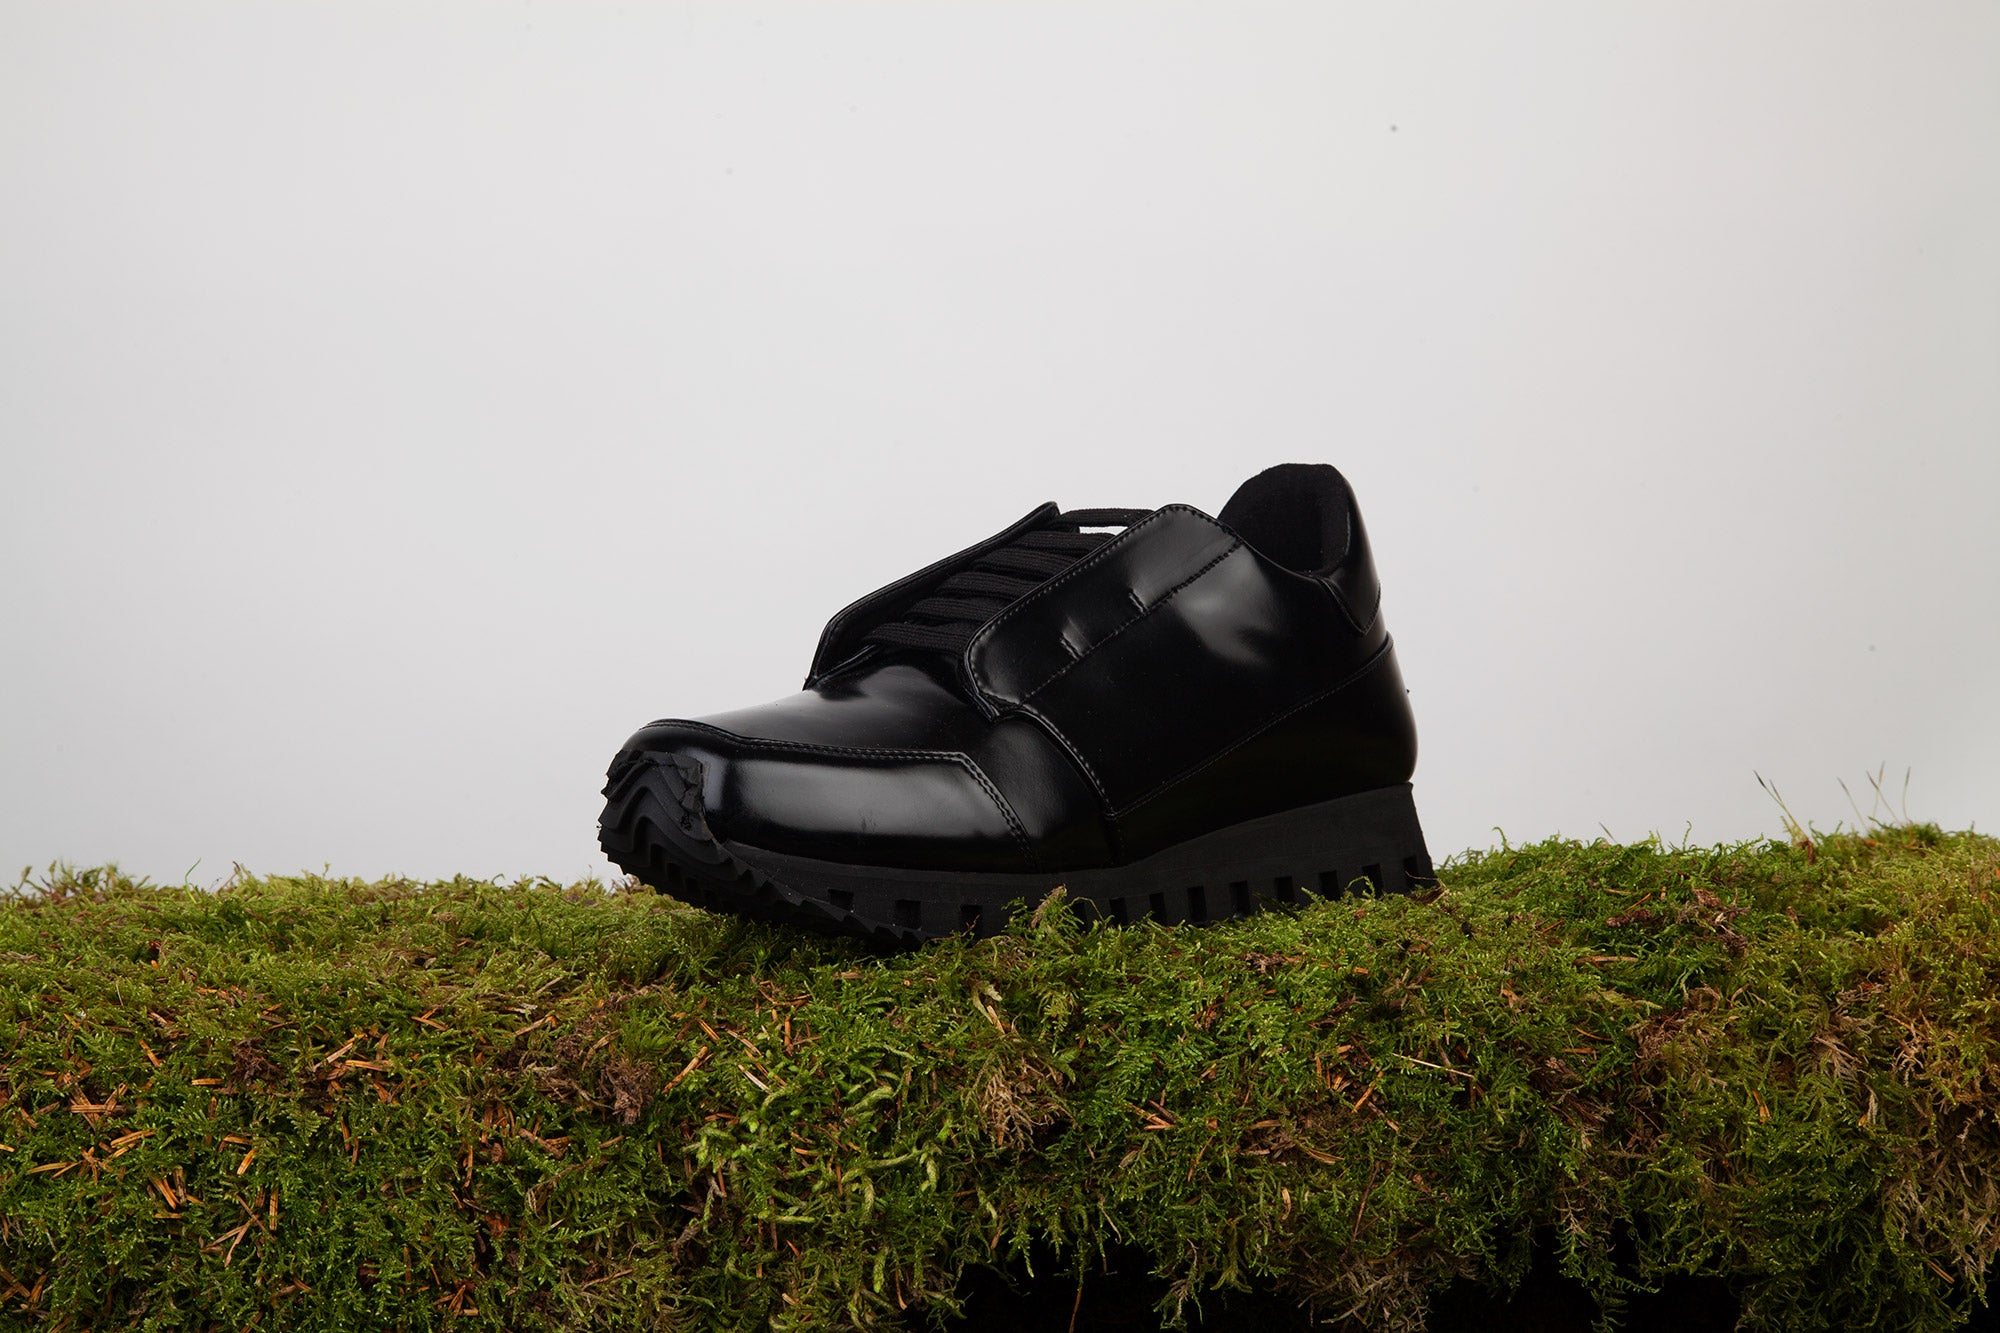 INSIGHT III running sneaker with hidden laces BLACK patent